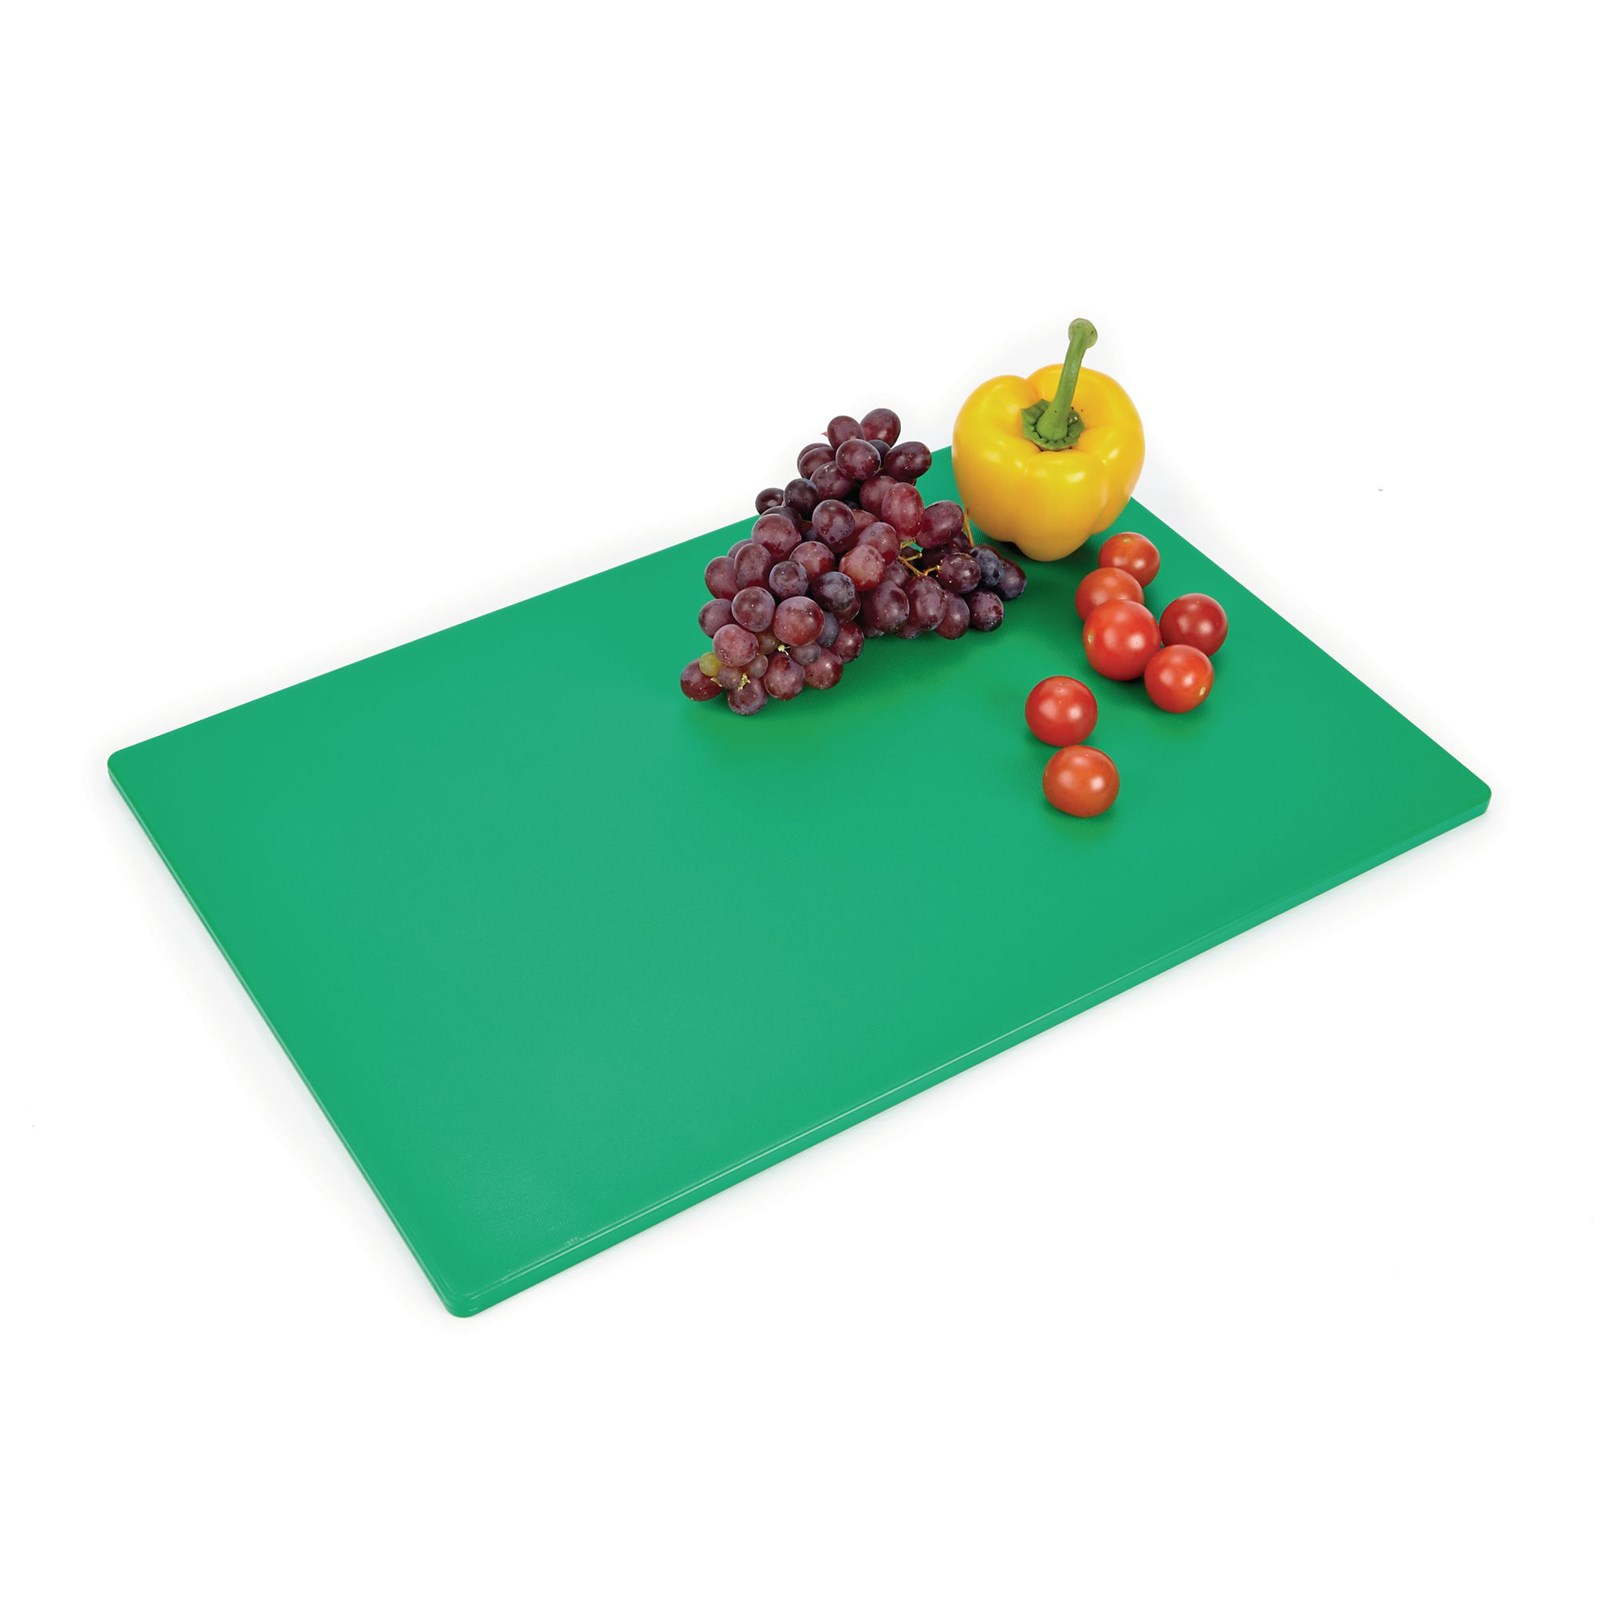 Colour Coded Cutting Boards - PVC wallchart